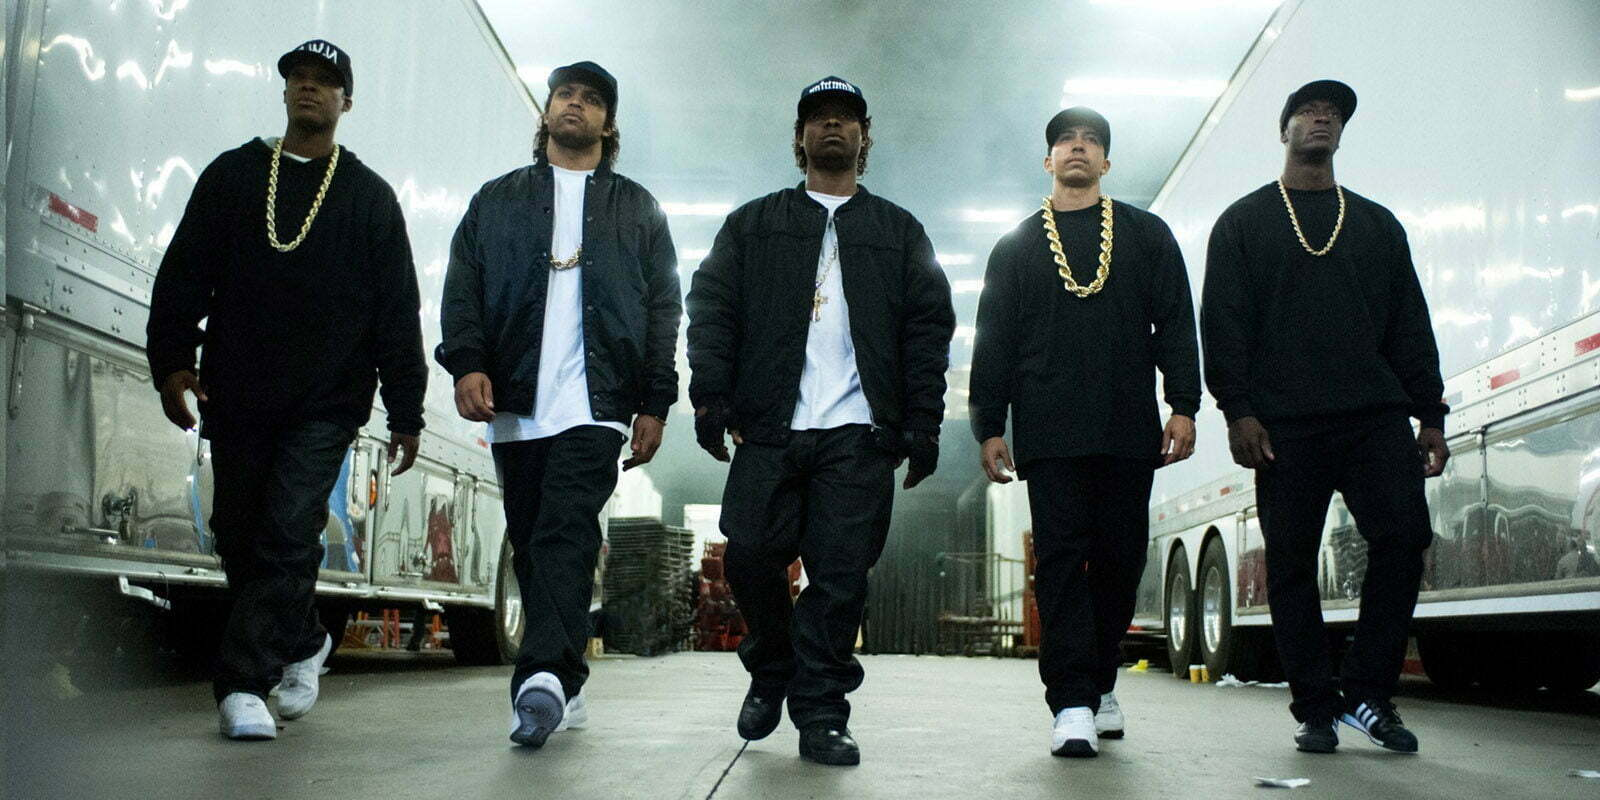 Mejores biopics musicales - Straight outta compton